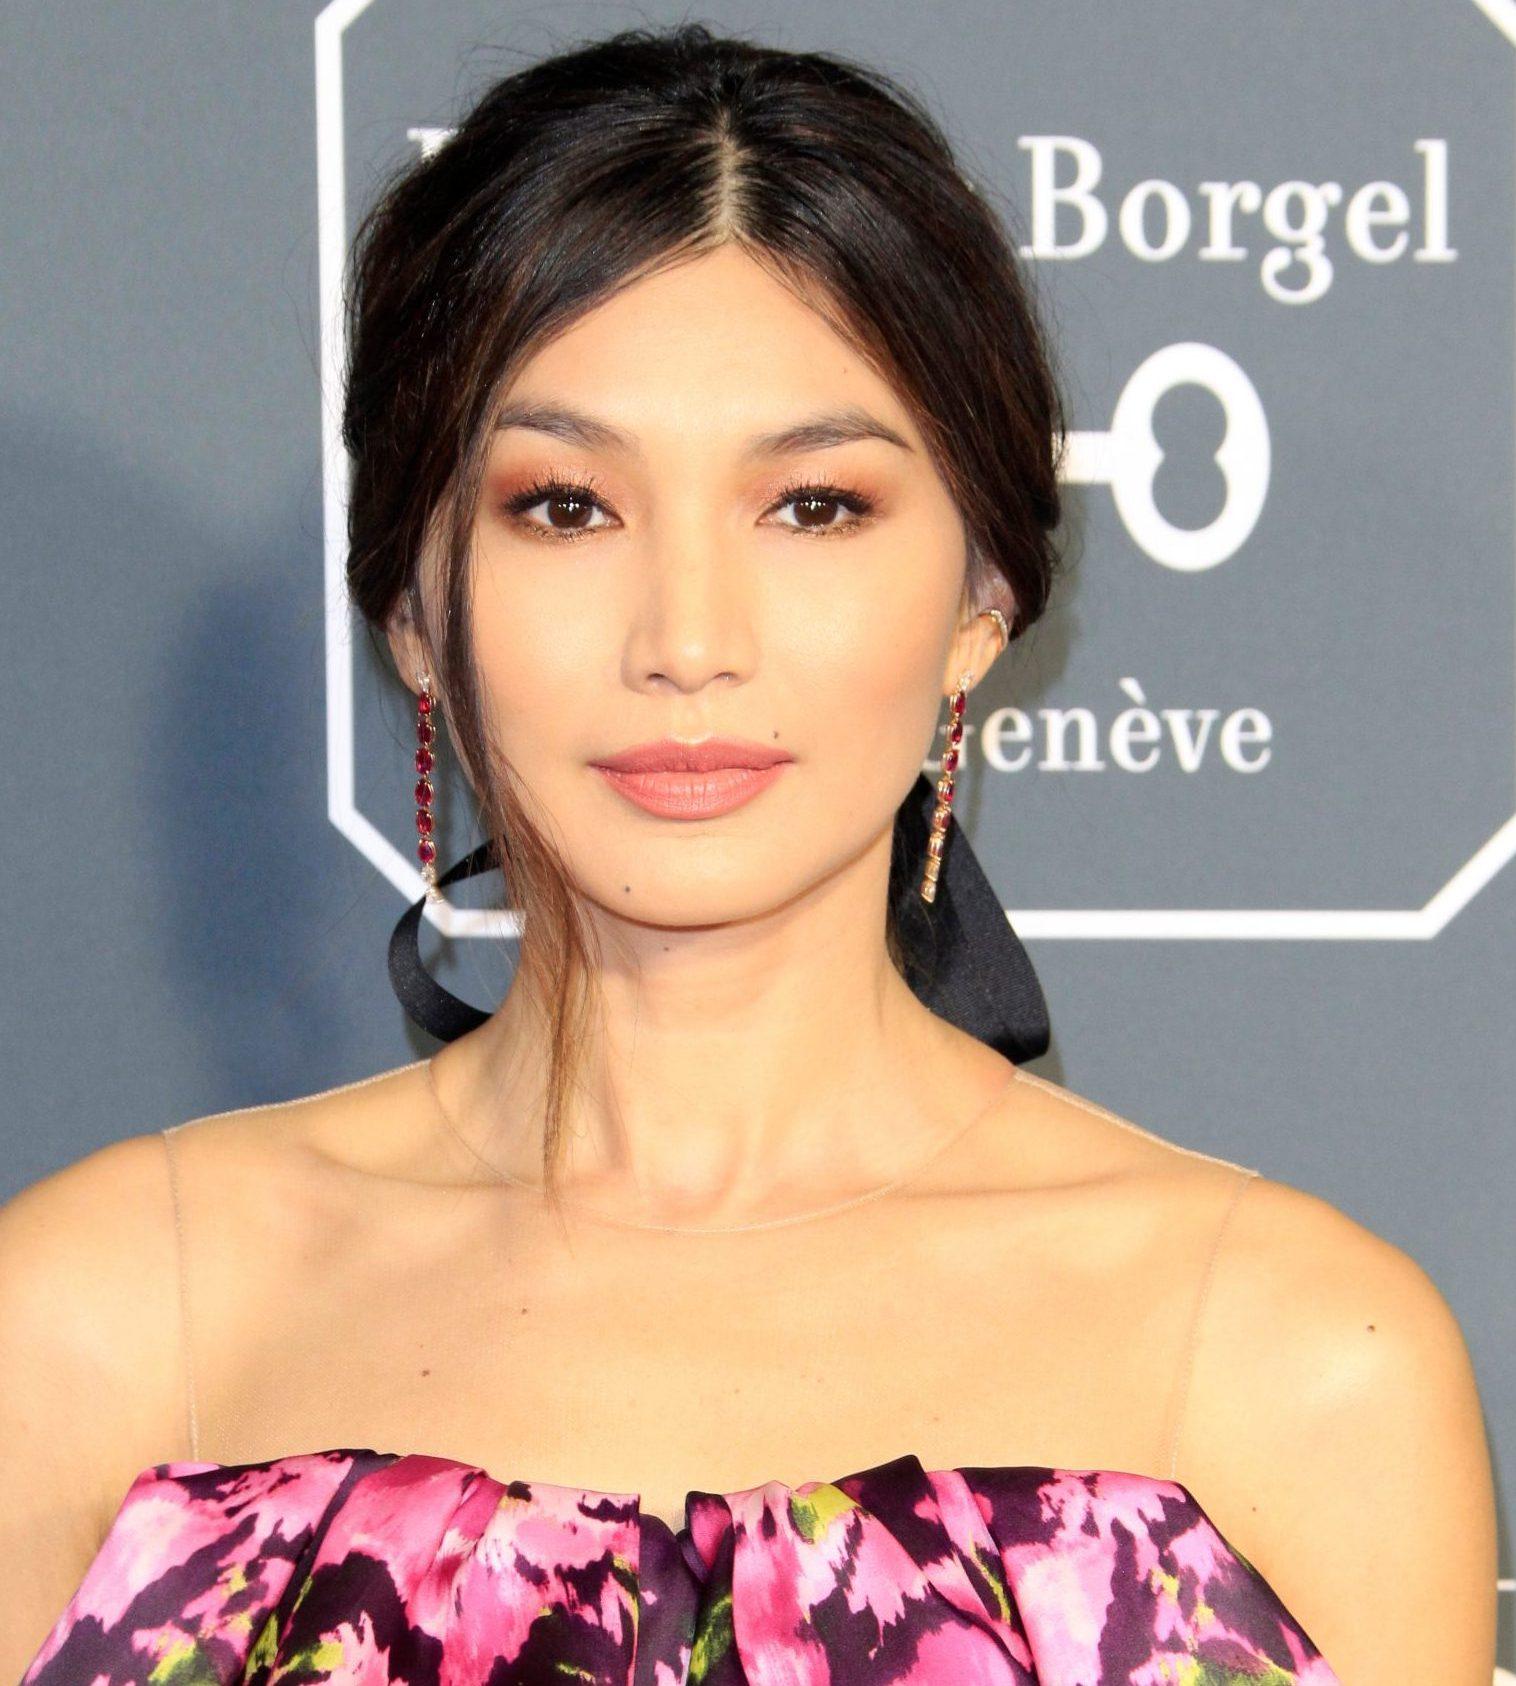 Gemma Chan smiles at a red carpet event. She wears an off the shoulder floral pink dress. Her hair is long and black, tied back in a loose ponytail.